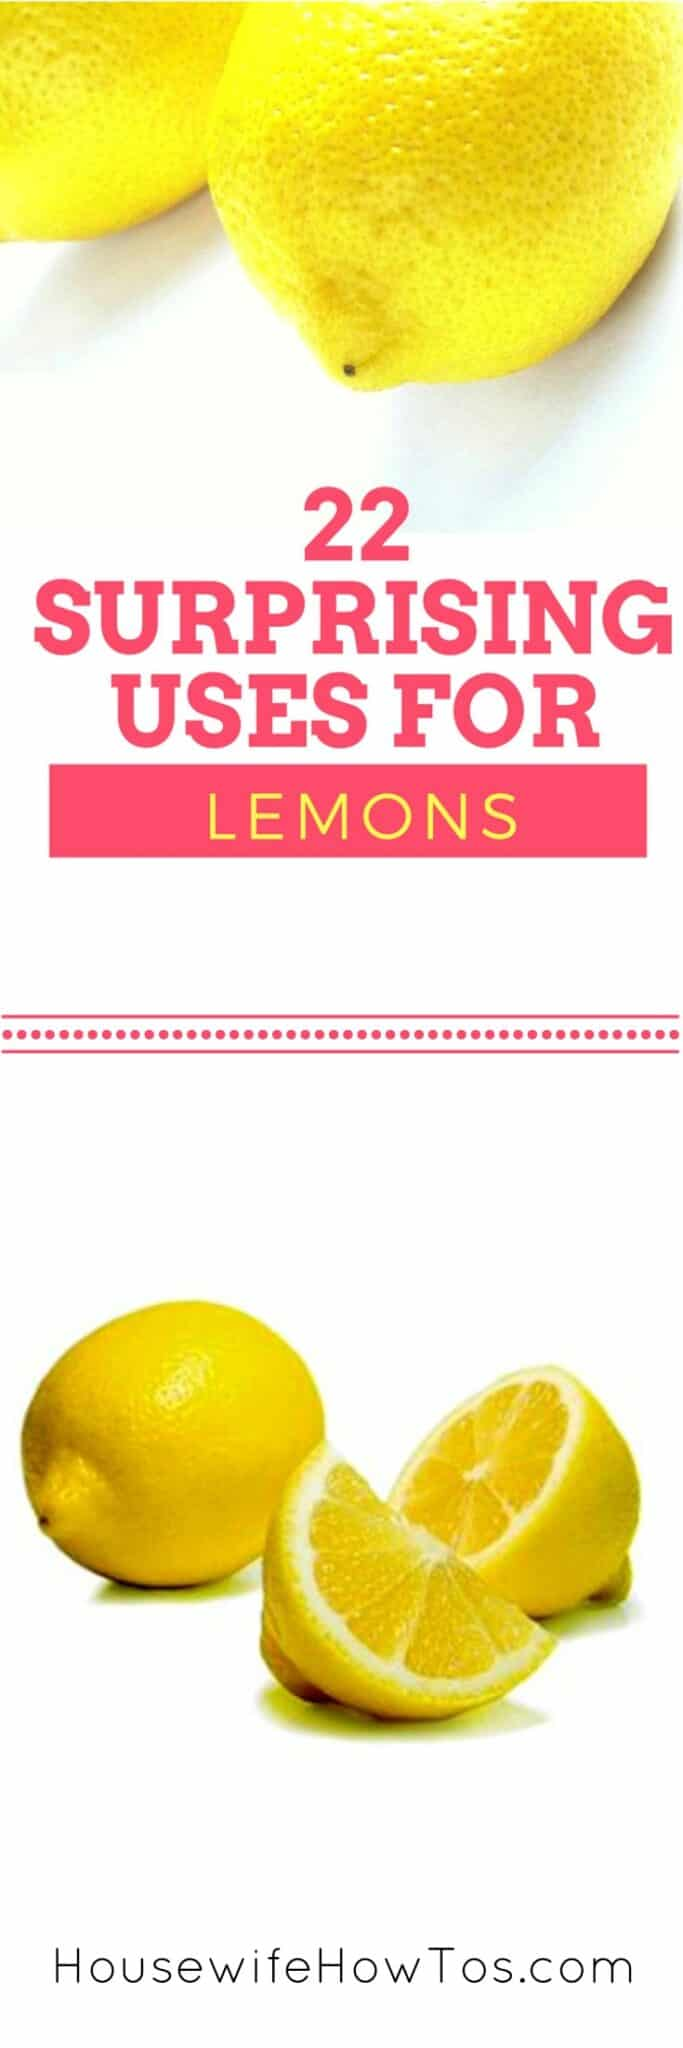 These are such clever ways to use lemons in the kitchen, to treat laundry, even as part of your beauty routine!